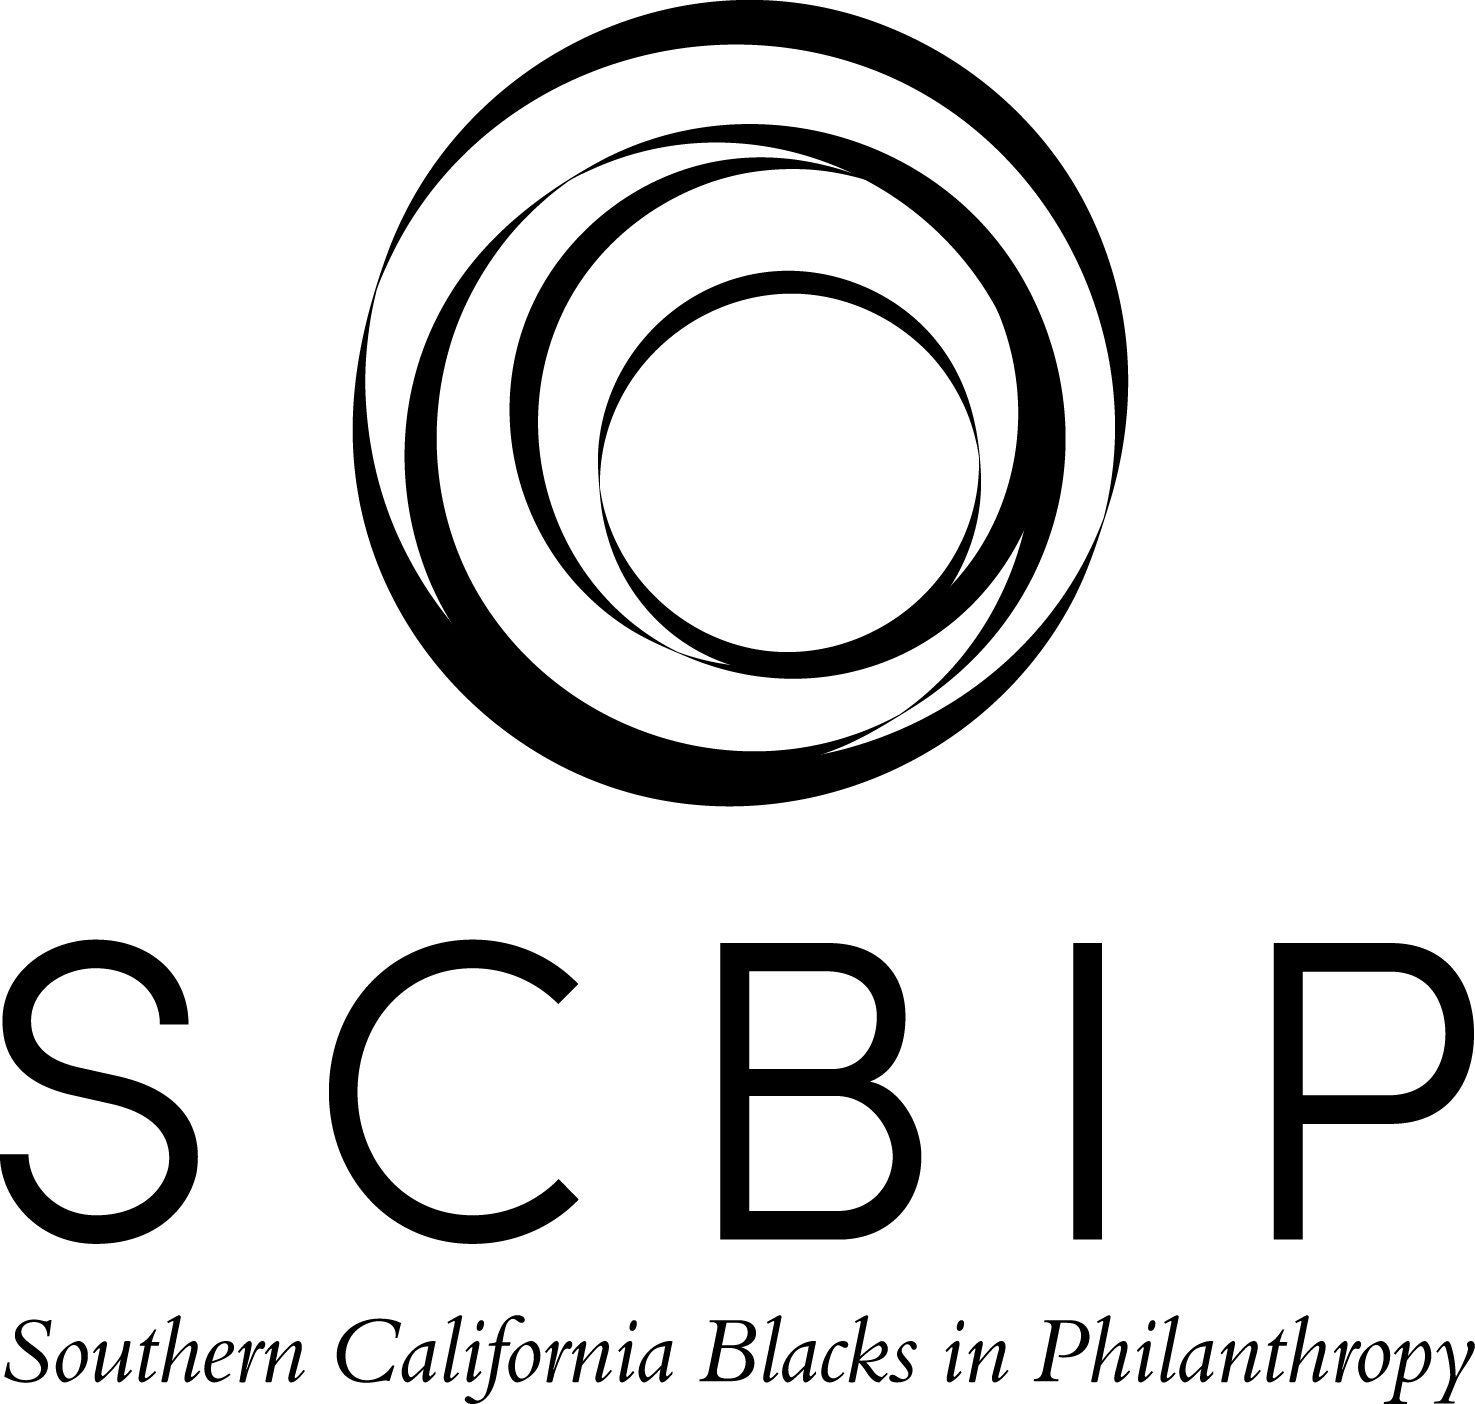 SoCal Blacks in Philanthropy